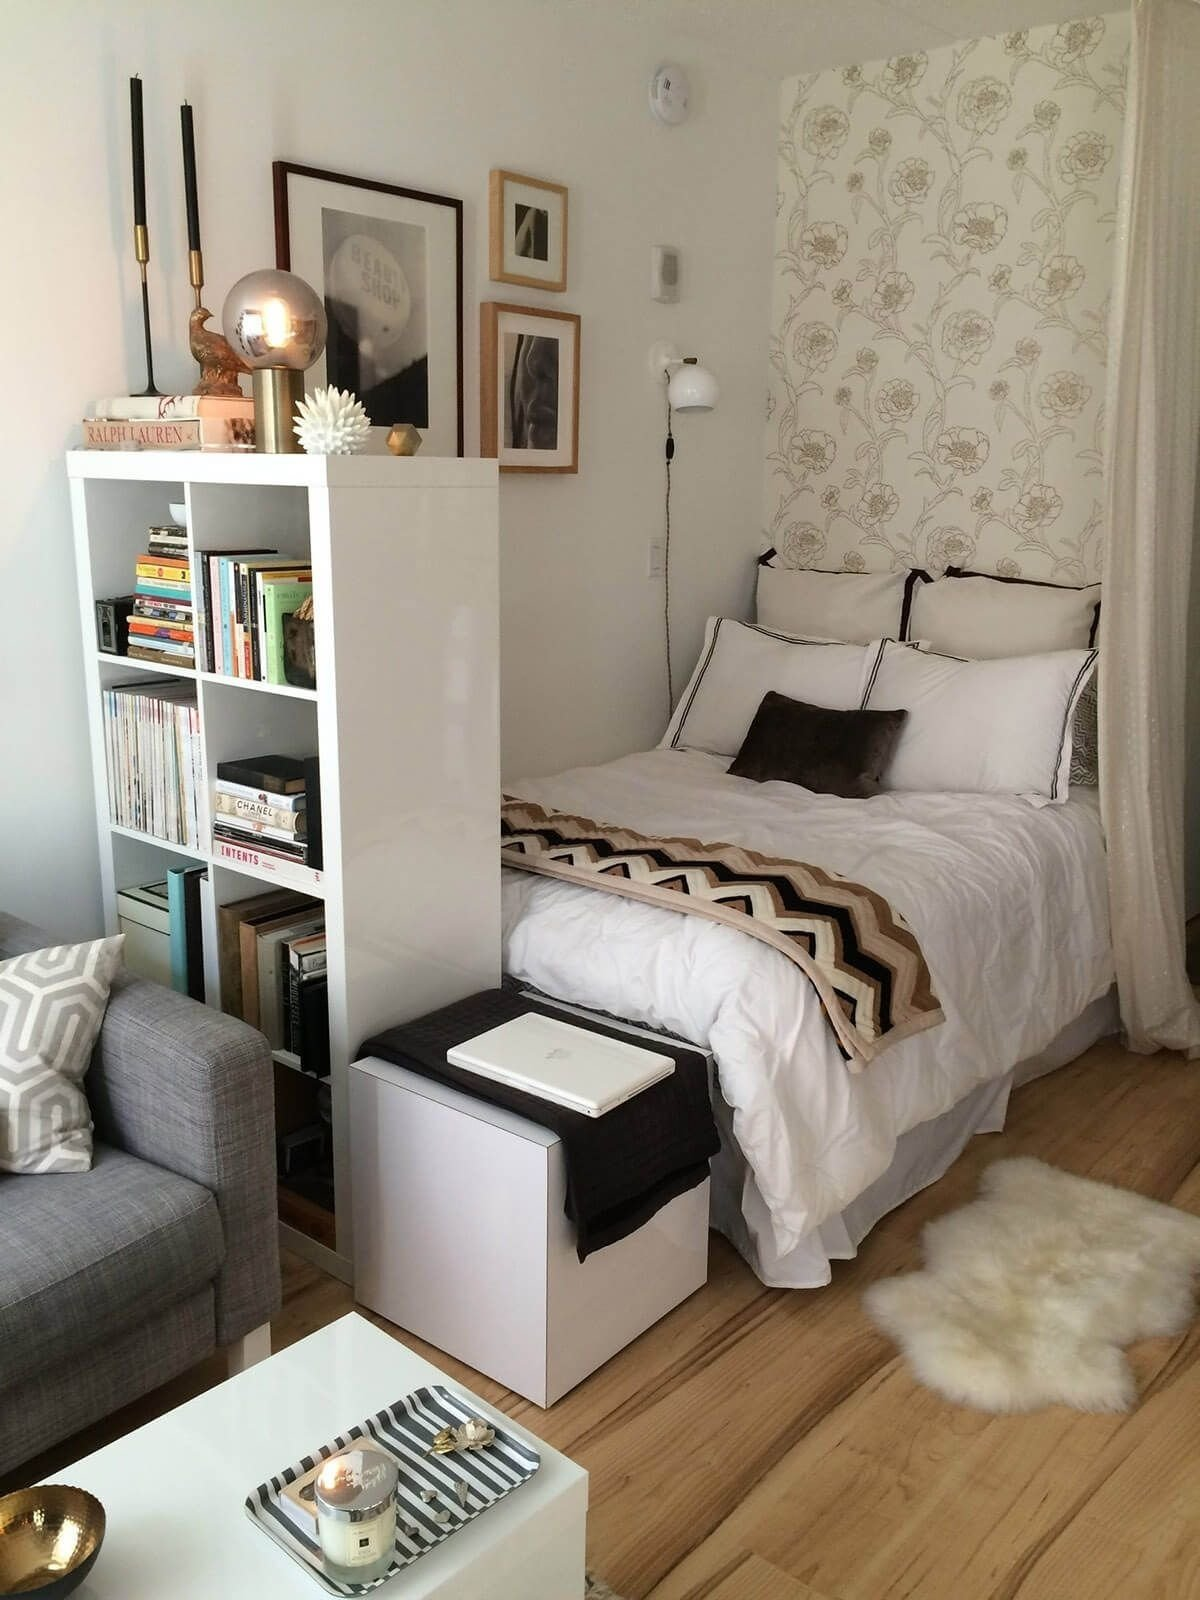 10 Elegant Organization Ideas For Small Bedrooms 37 small bedroom designs and ideas for maximizing your small space 1